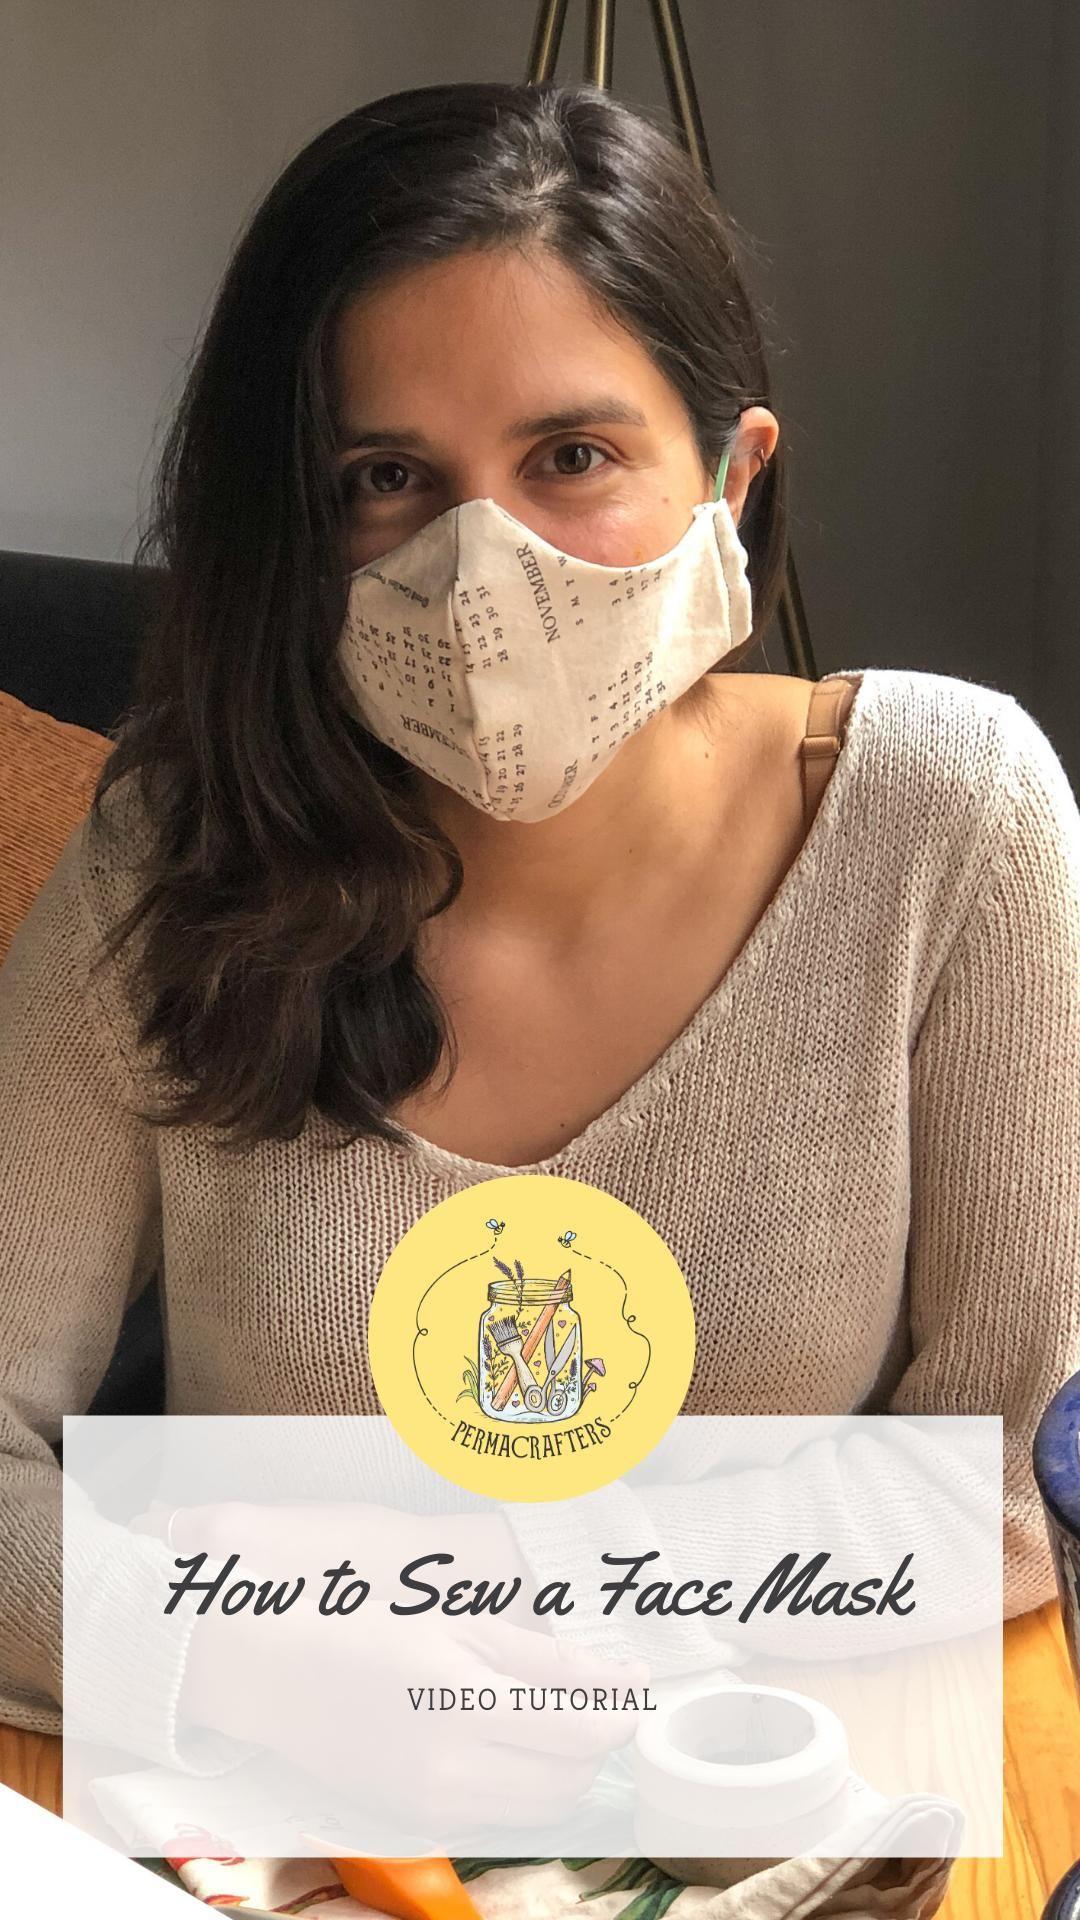 How to Sew a Face Mask to Slow the Spread of COVID-19